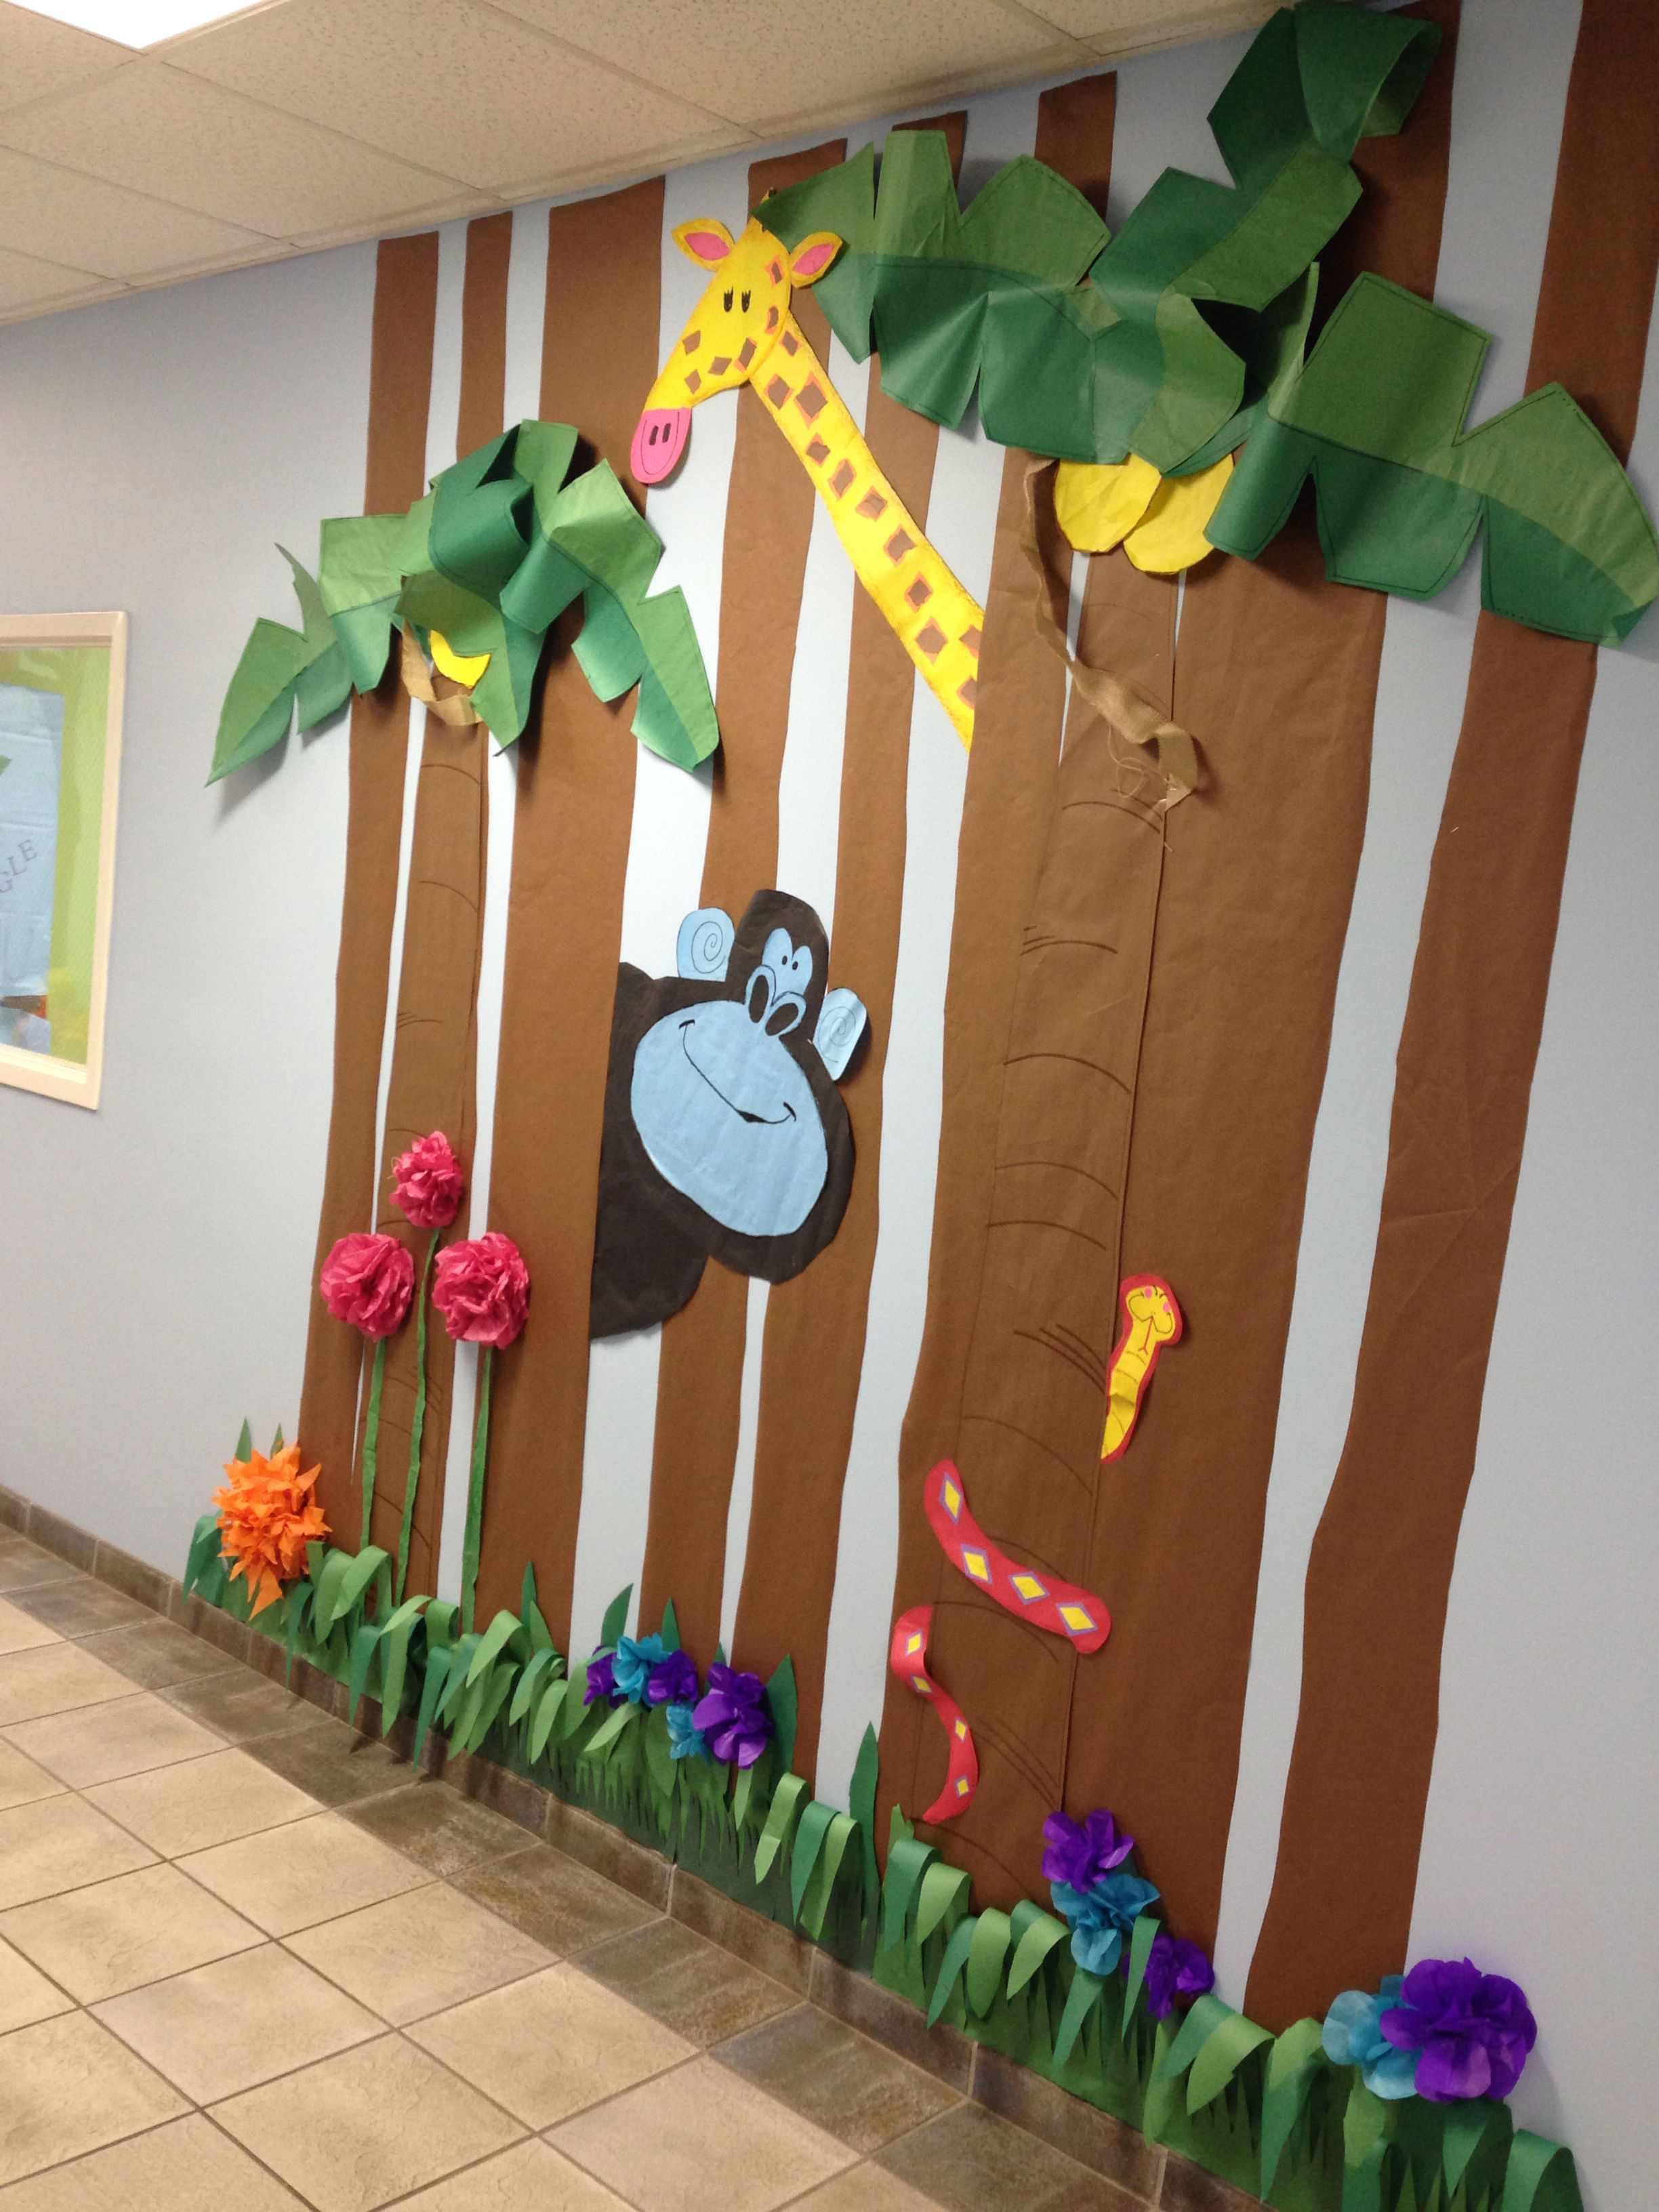 Giraffe And Gorilla Rumble In The Jungle Preschool Hall